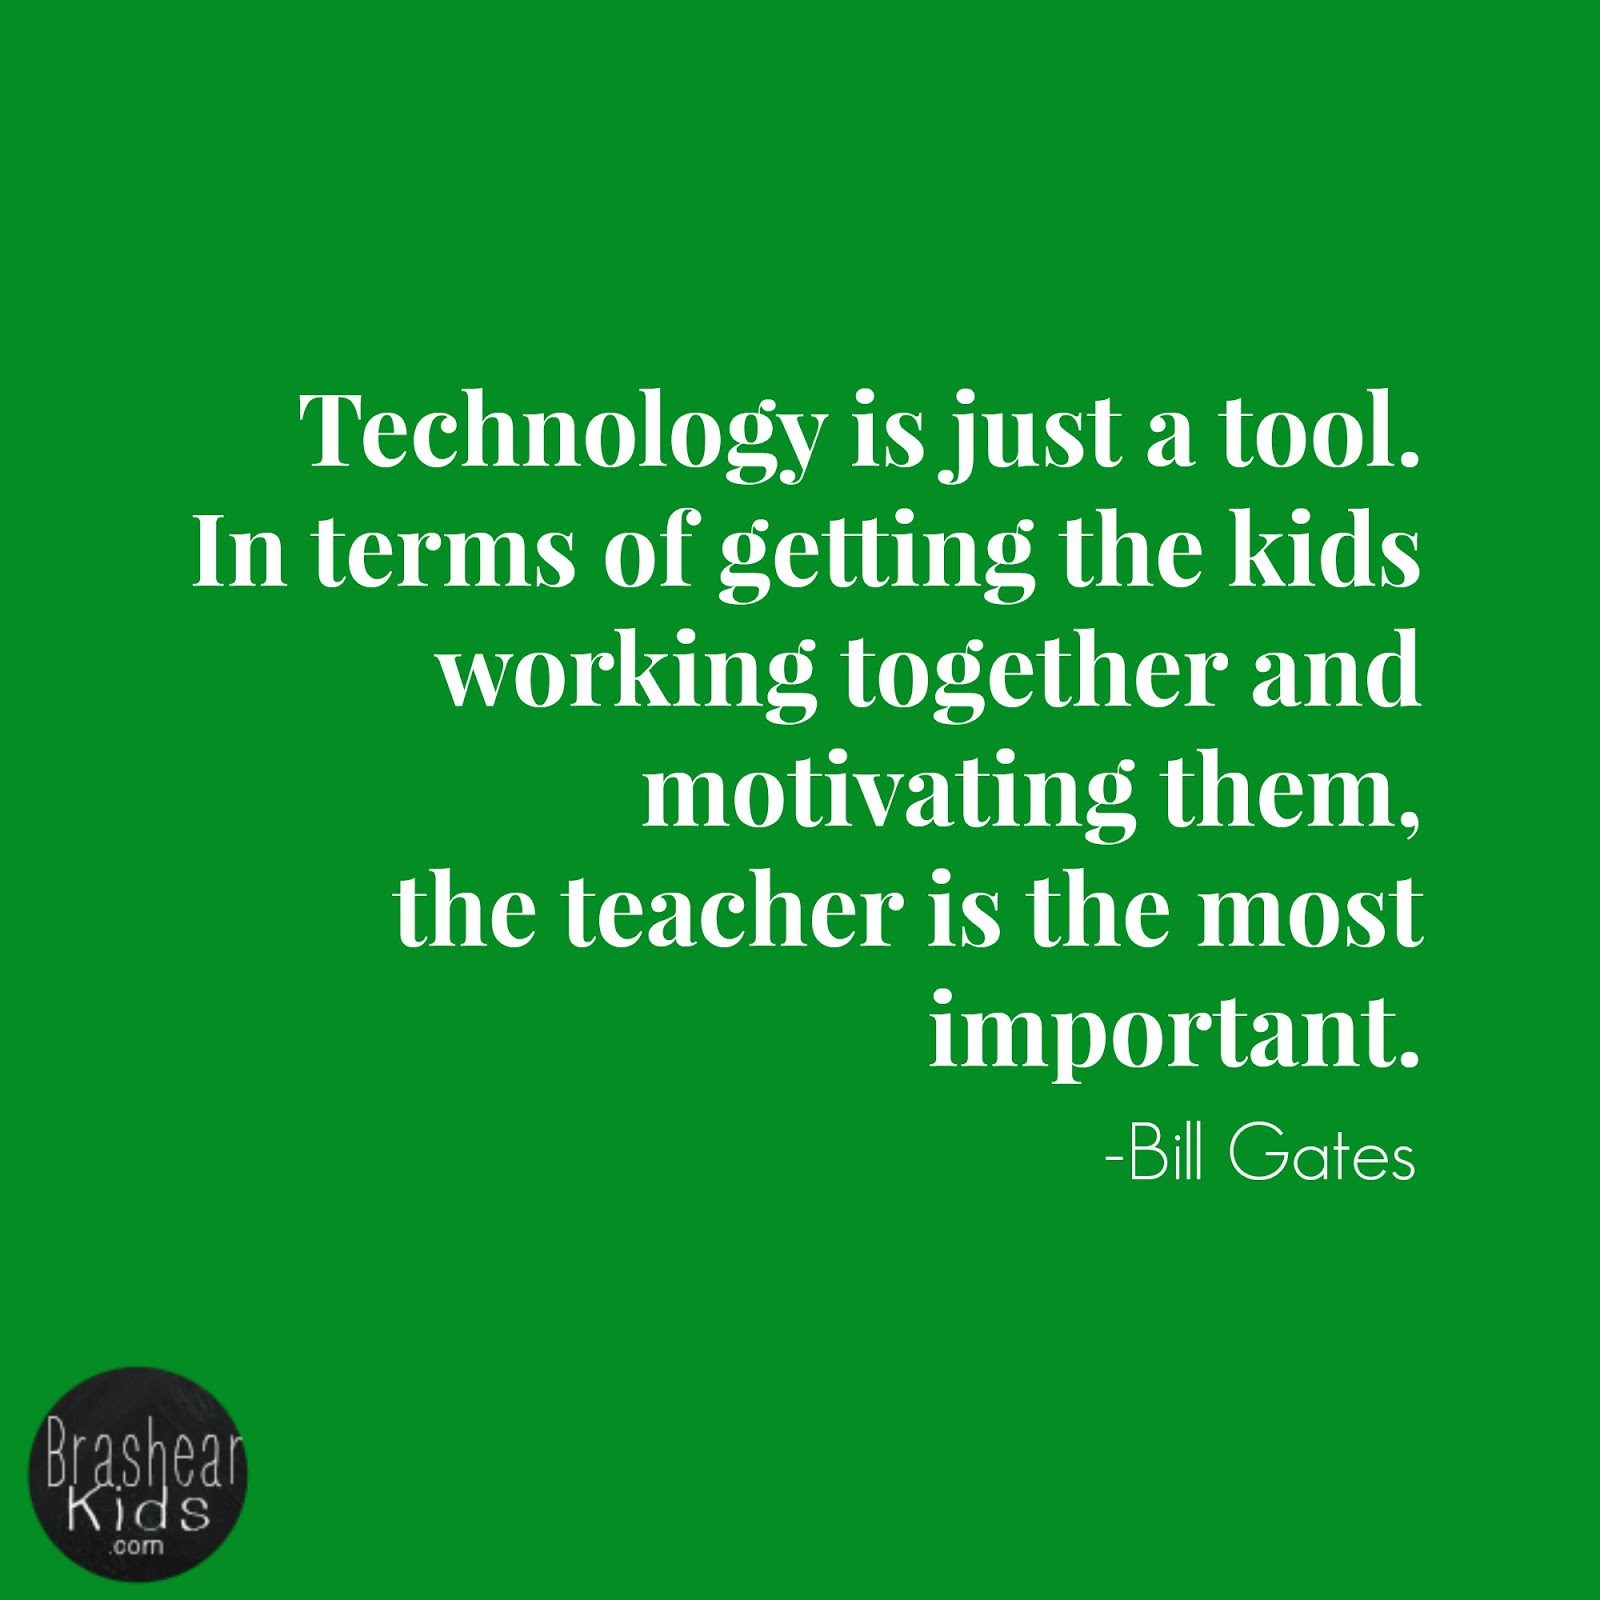 Bill Gates Quotes About Technology Quotesgram